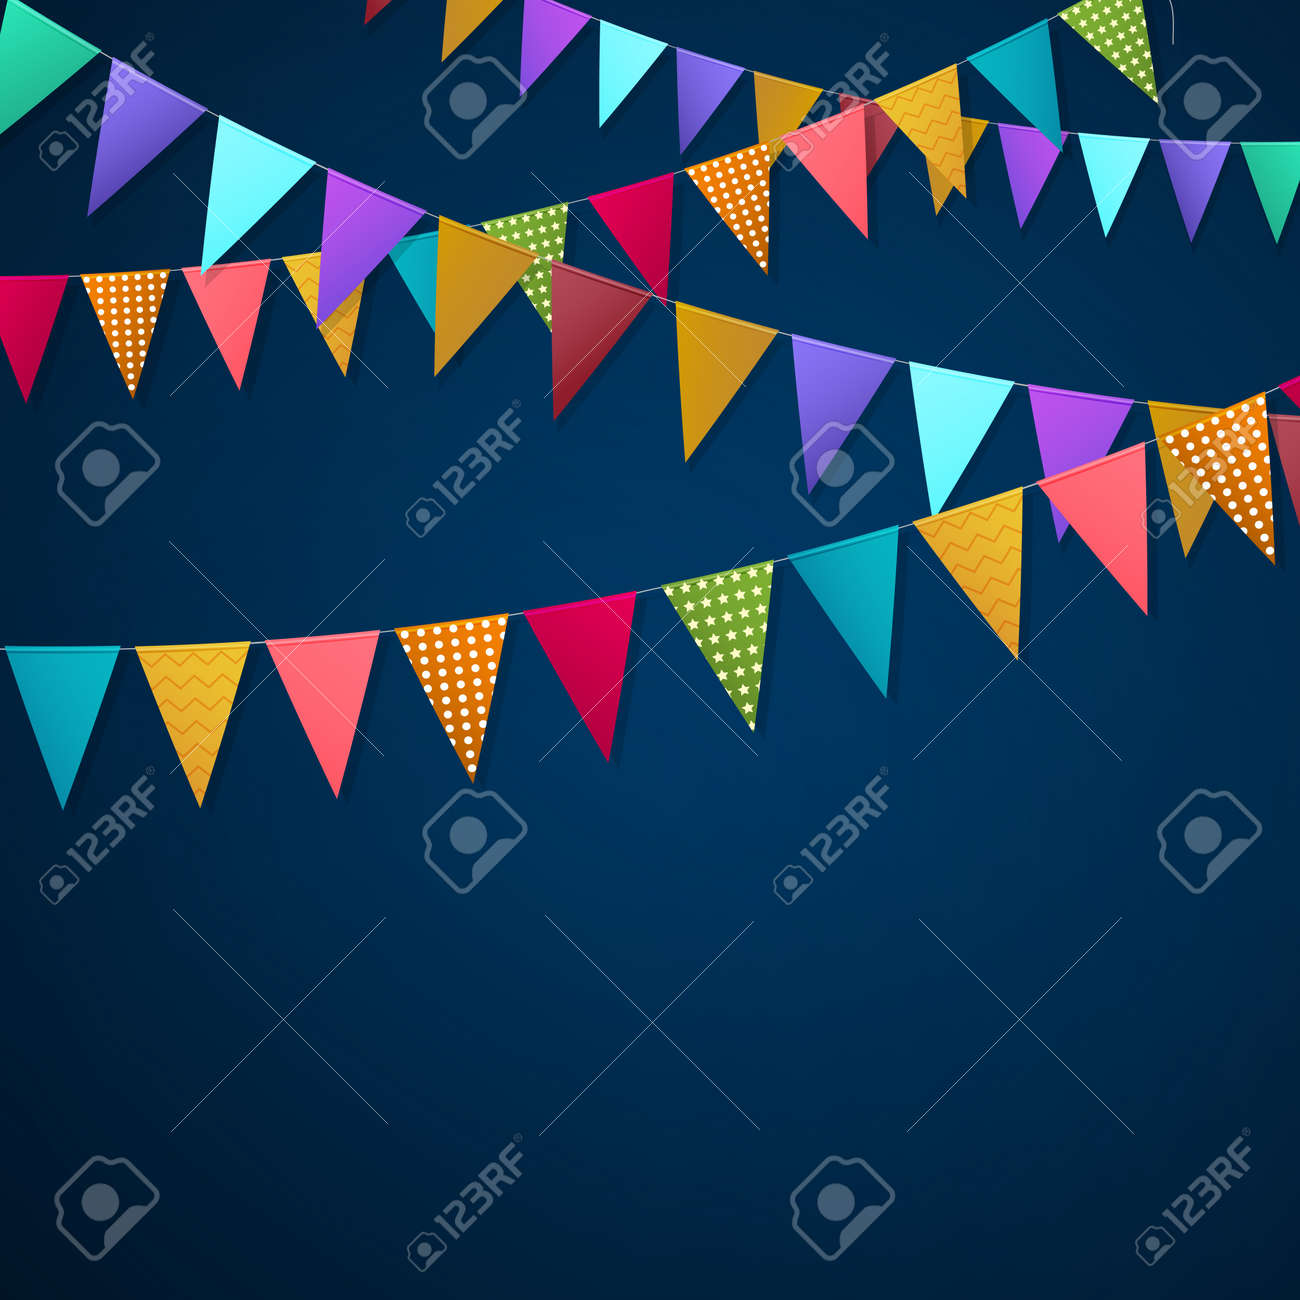 Realistic holiday garlands from triangle colorful flags hanging on string on dark background 3d vector illustration - 165968727